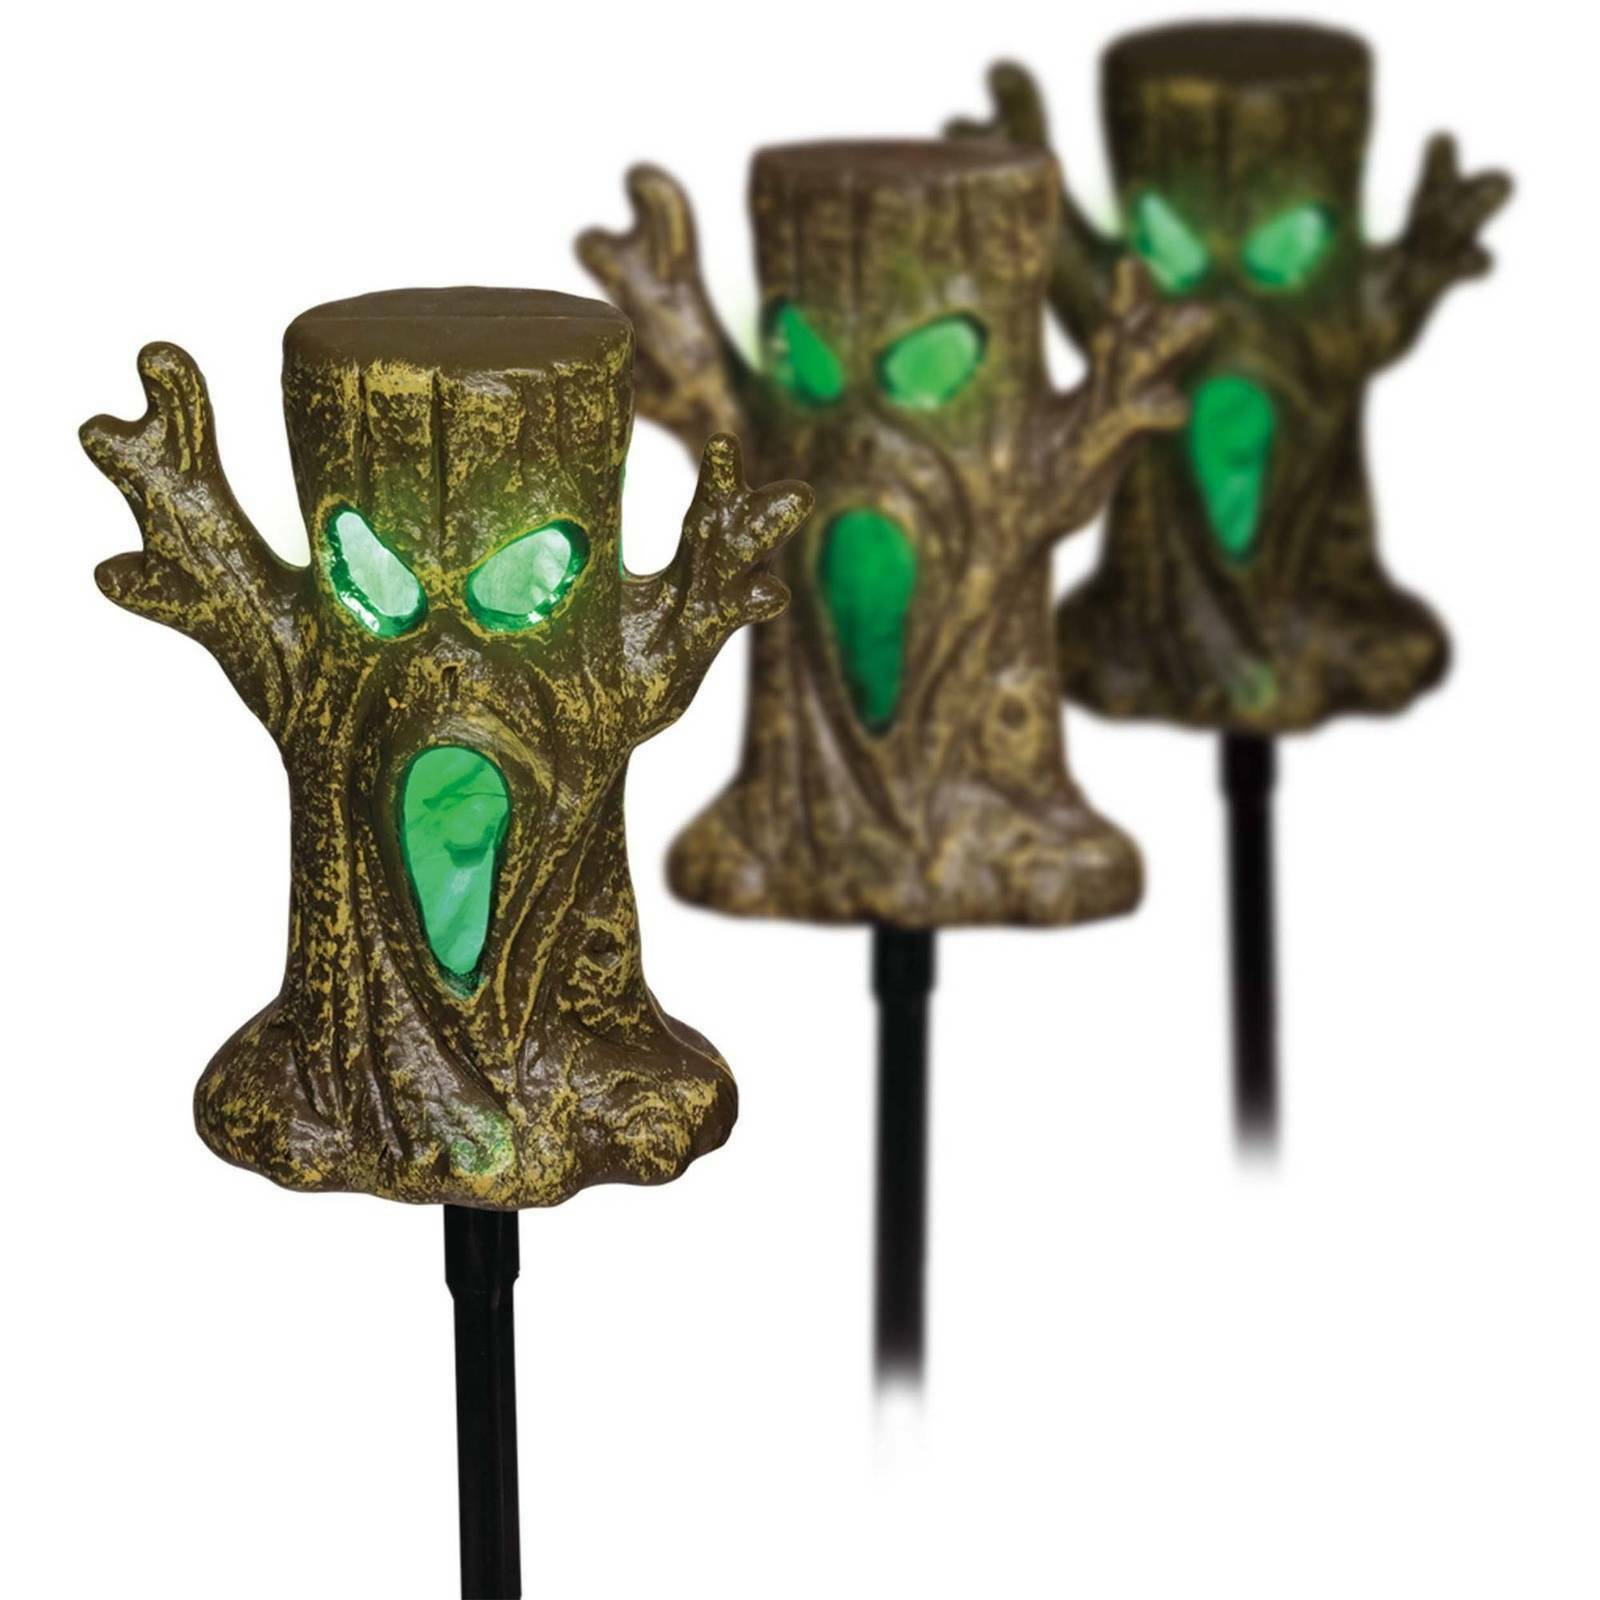 Halloween Spooky Tree Lawn LED 3 Pcs Stakes Set Yard Decor Outdoor Decorations